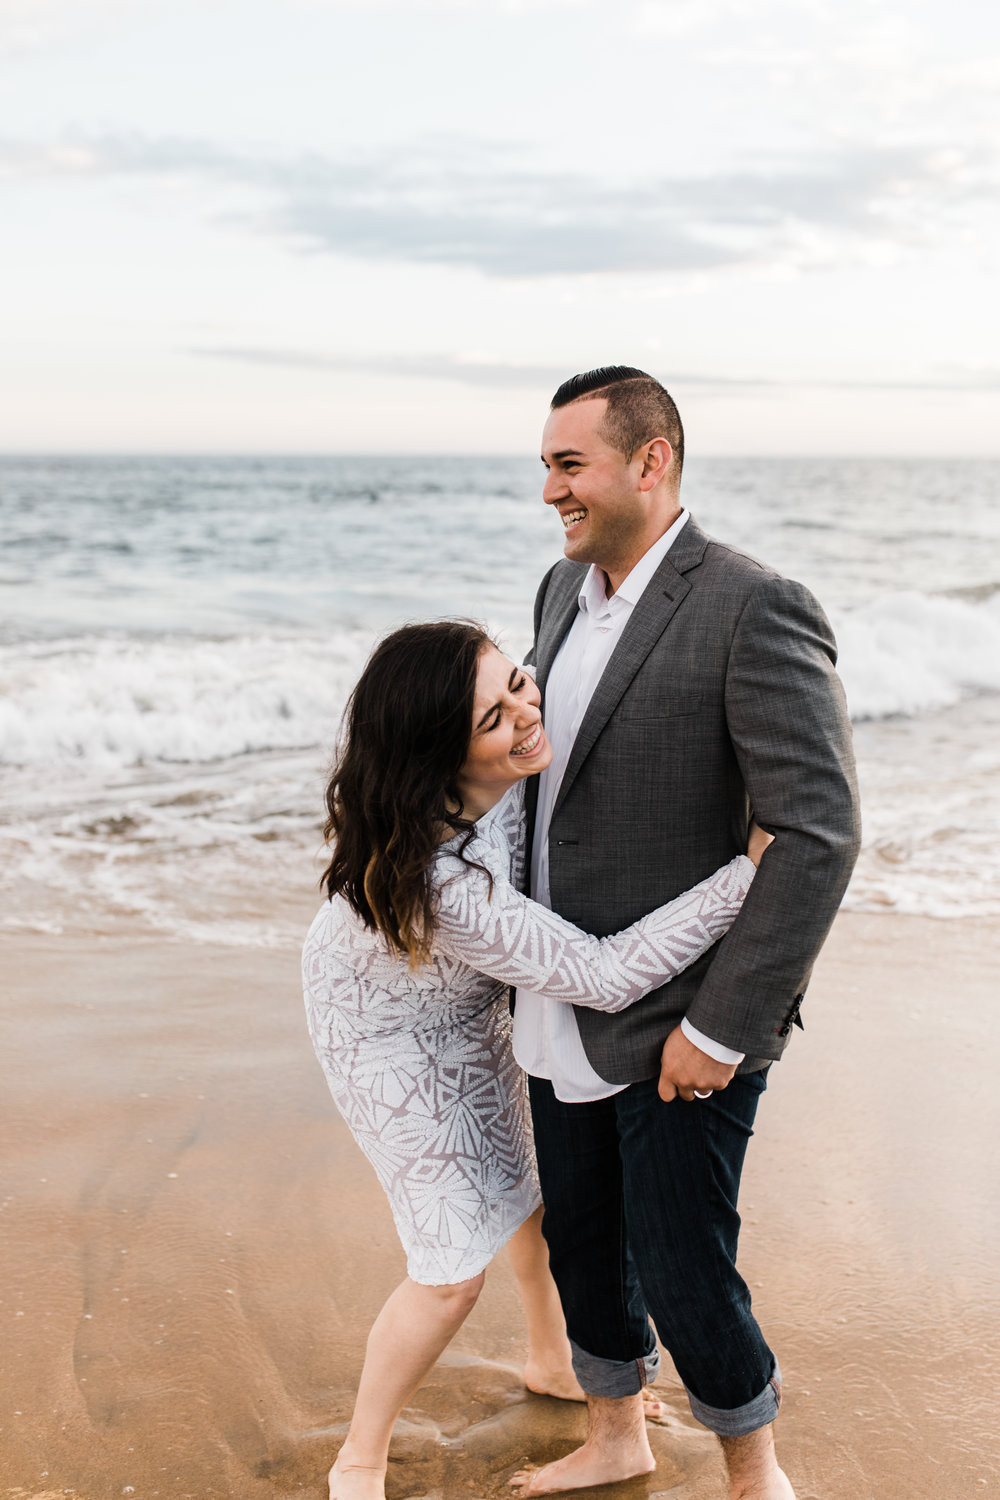 Elise&Julio-The-Wedge-Newport-Beach-CRM-Media-Southern-California-Wedding-Photographer-18